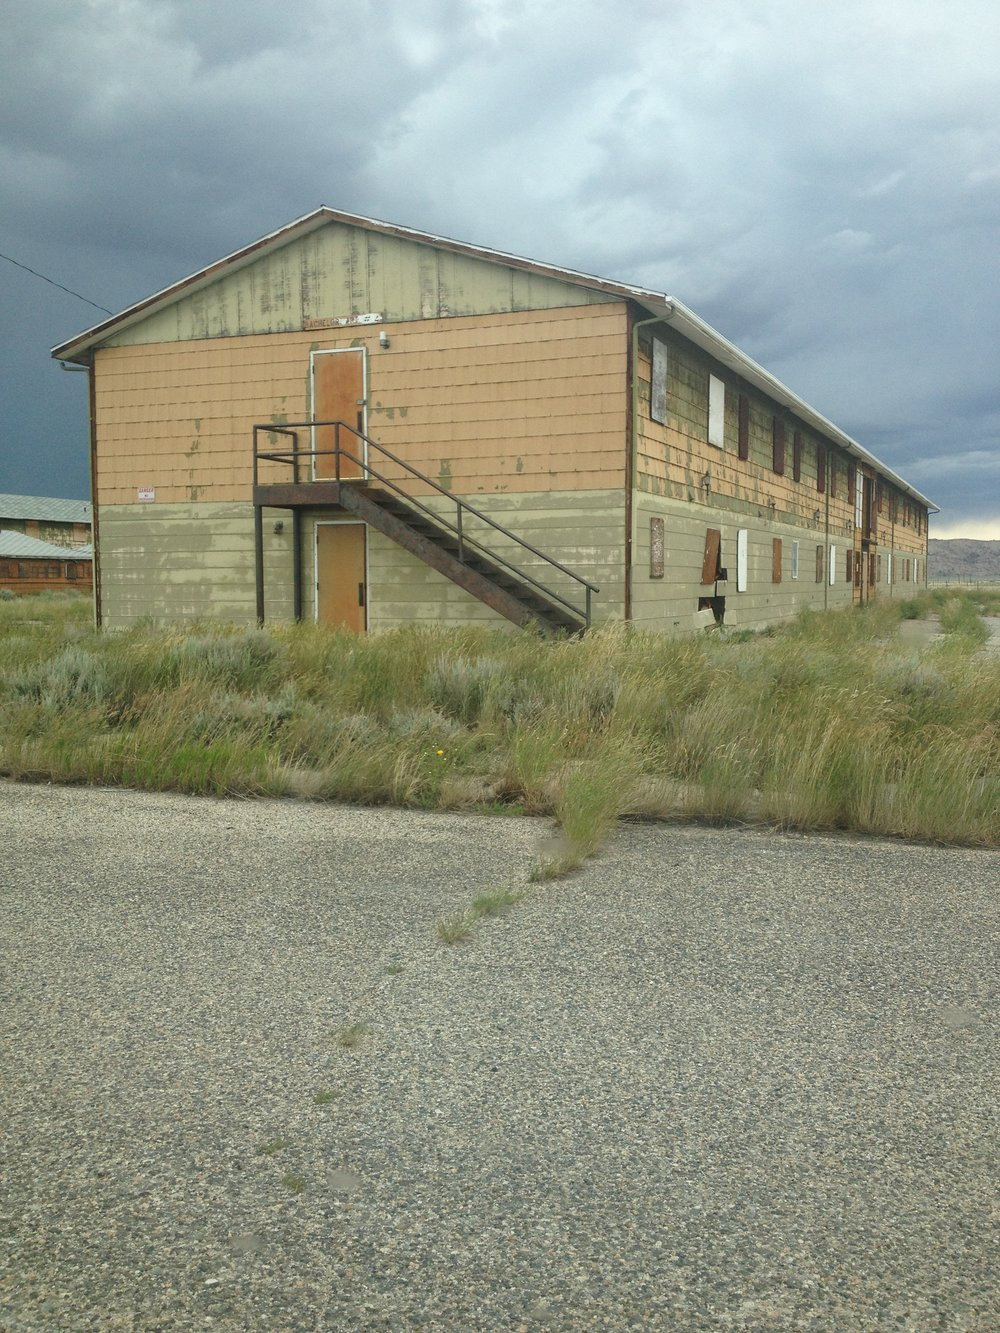 Jeffrey City is dotted with abandoned apartment buildings.